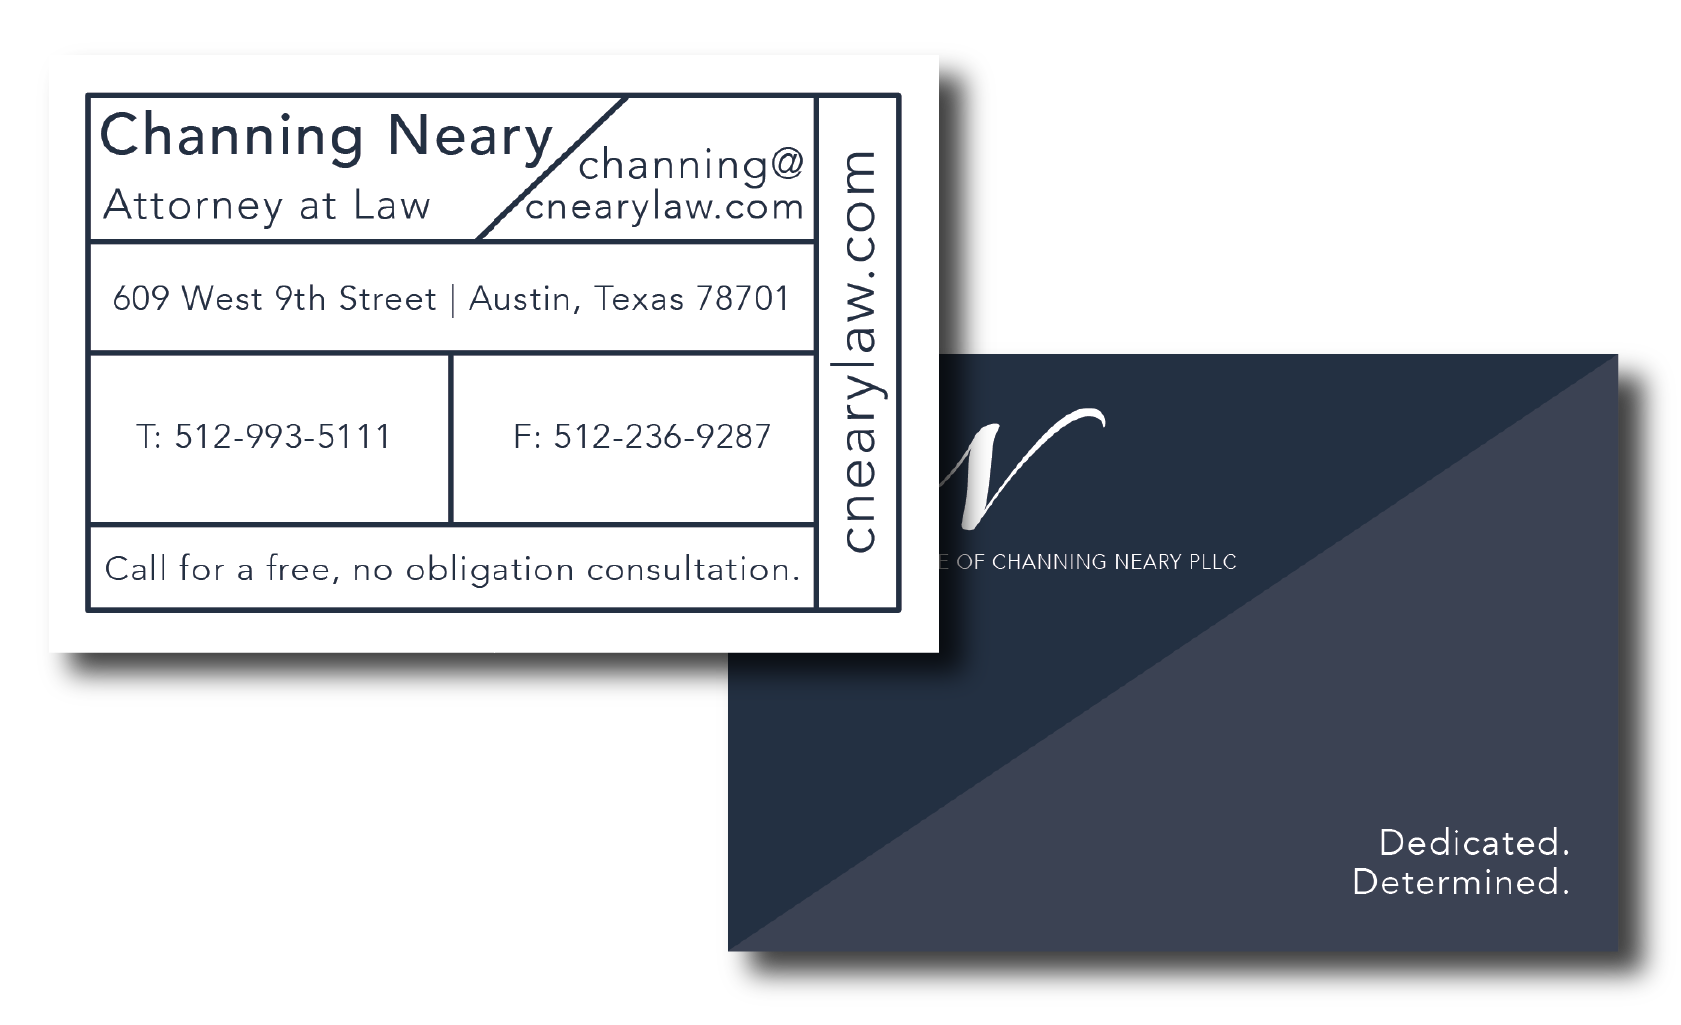 Law Office of Channing Neary